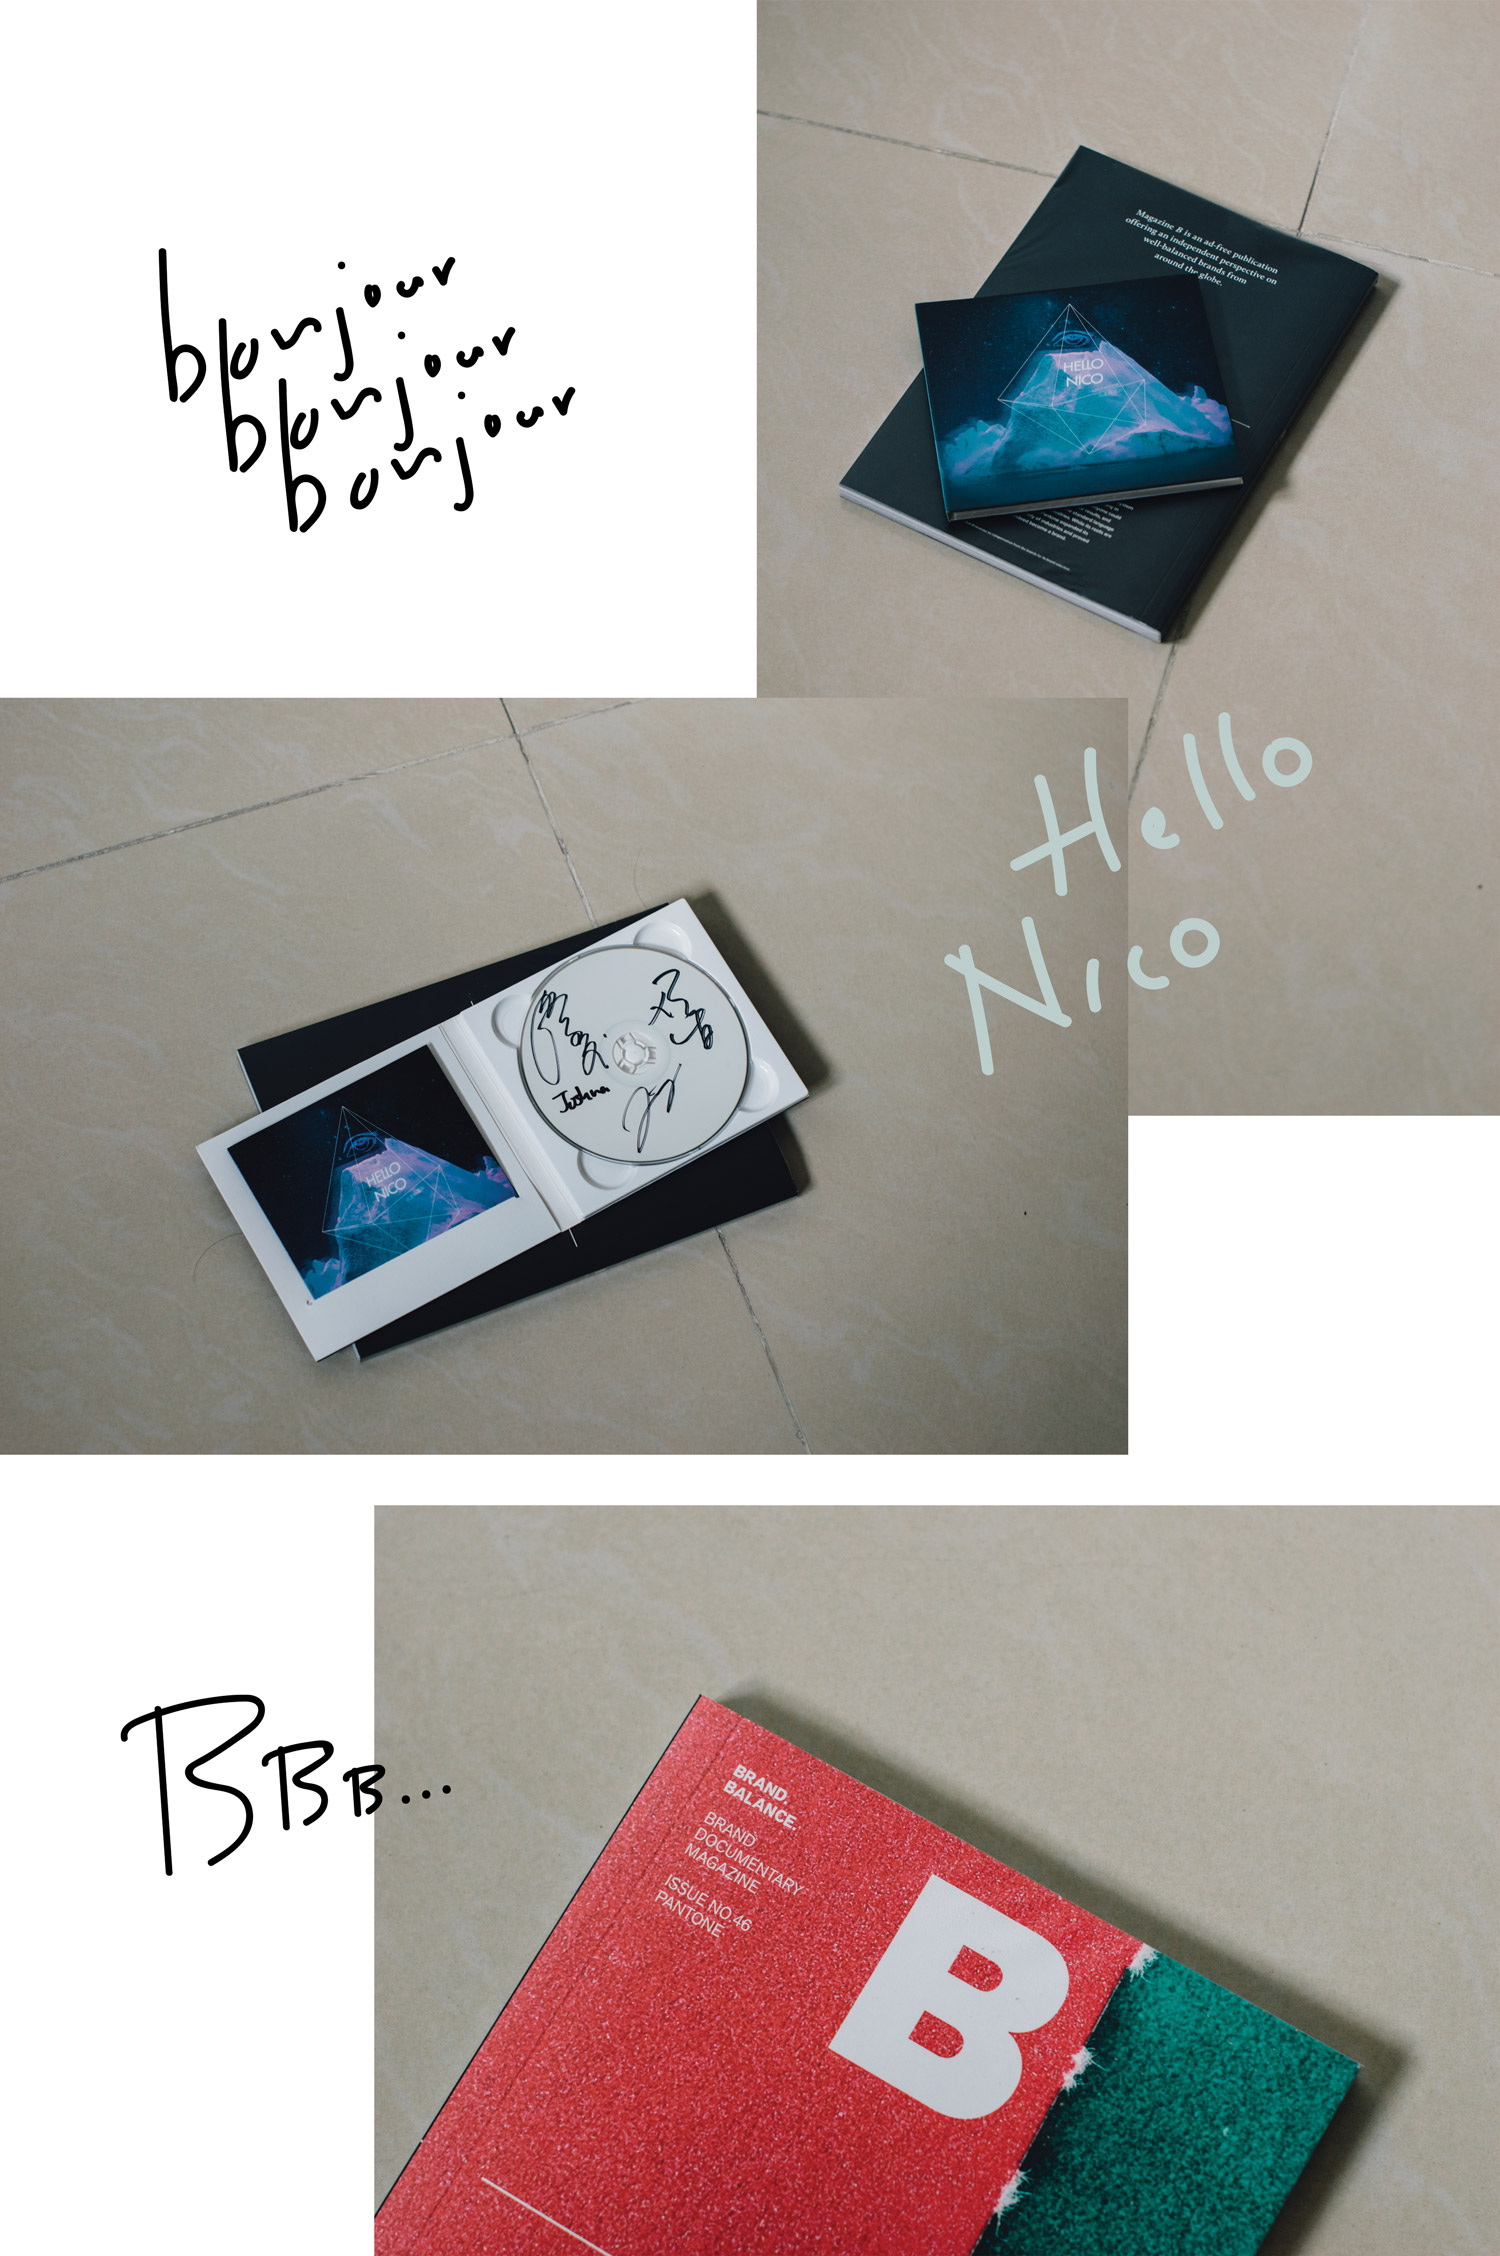 New In: Hello Nico - Familiar Desolation 熟悉的荒凉 + Magazine B - Pantone | A Beautiful Distraction